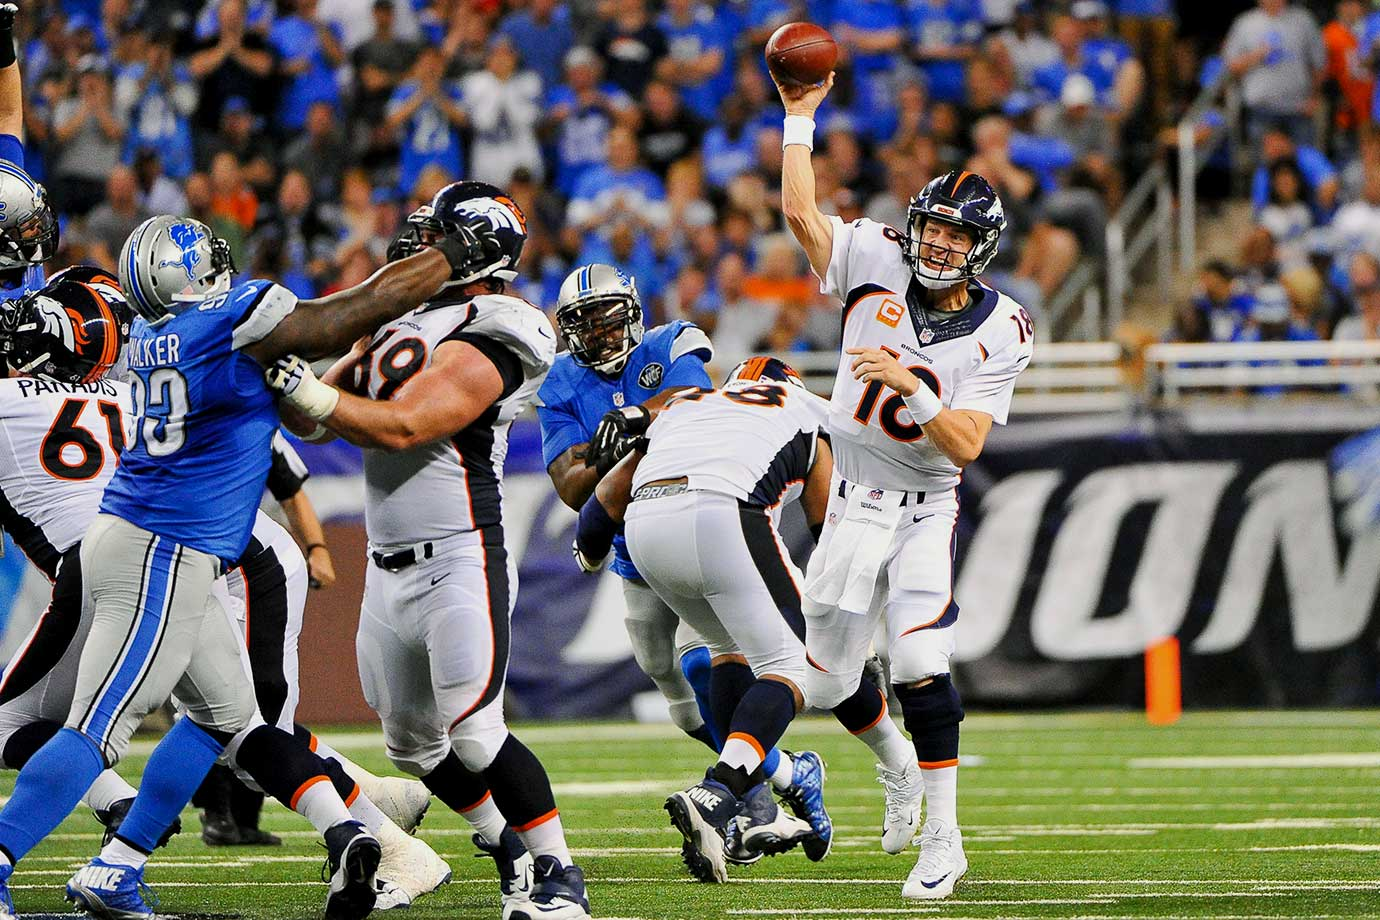 After two straight wins, the Broncos went to Detroit in what was one of Manning's best performances of the season. He went 31 for 42 with 324 yards, two touchdowns and an interception. The Broncos took the lead on a Ronnie Hillman touchdown in the second quarter and never relinquished it, despite Detroit staying close most of the game. Denver won 24-12.